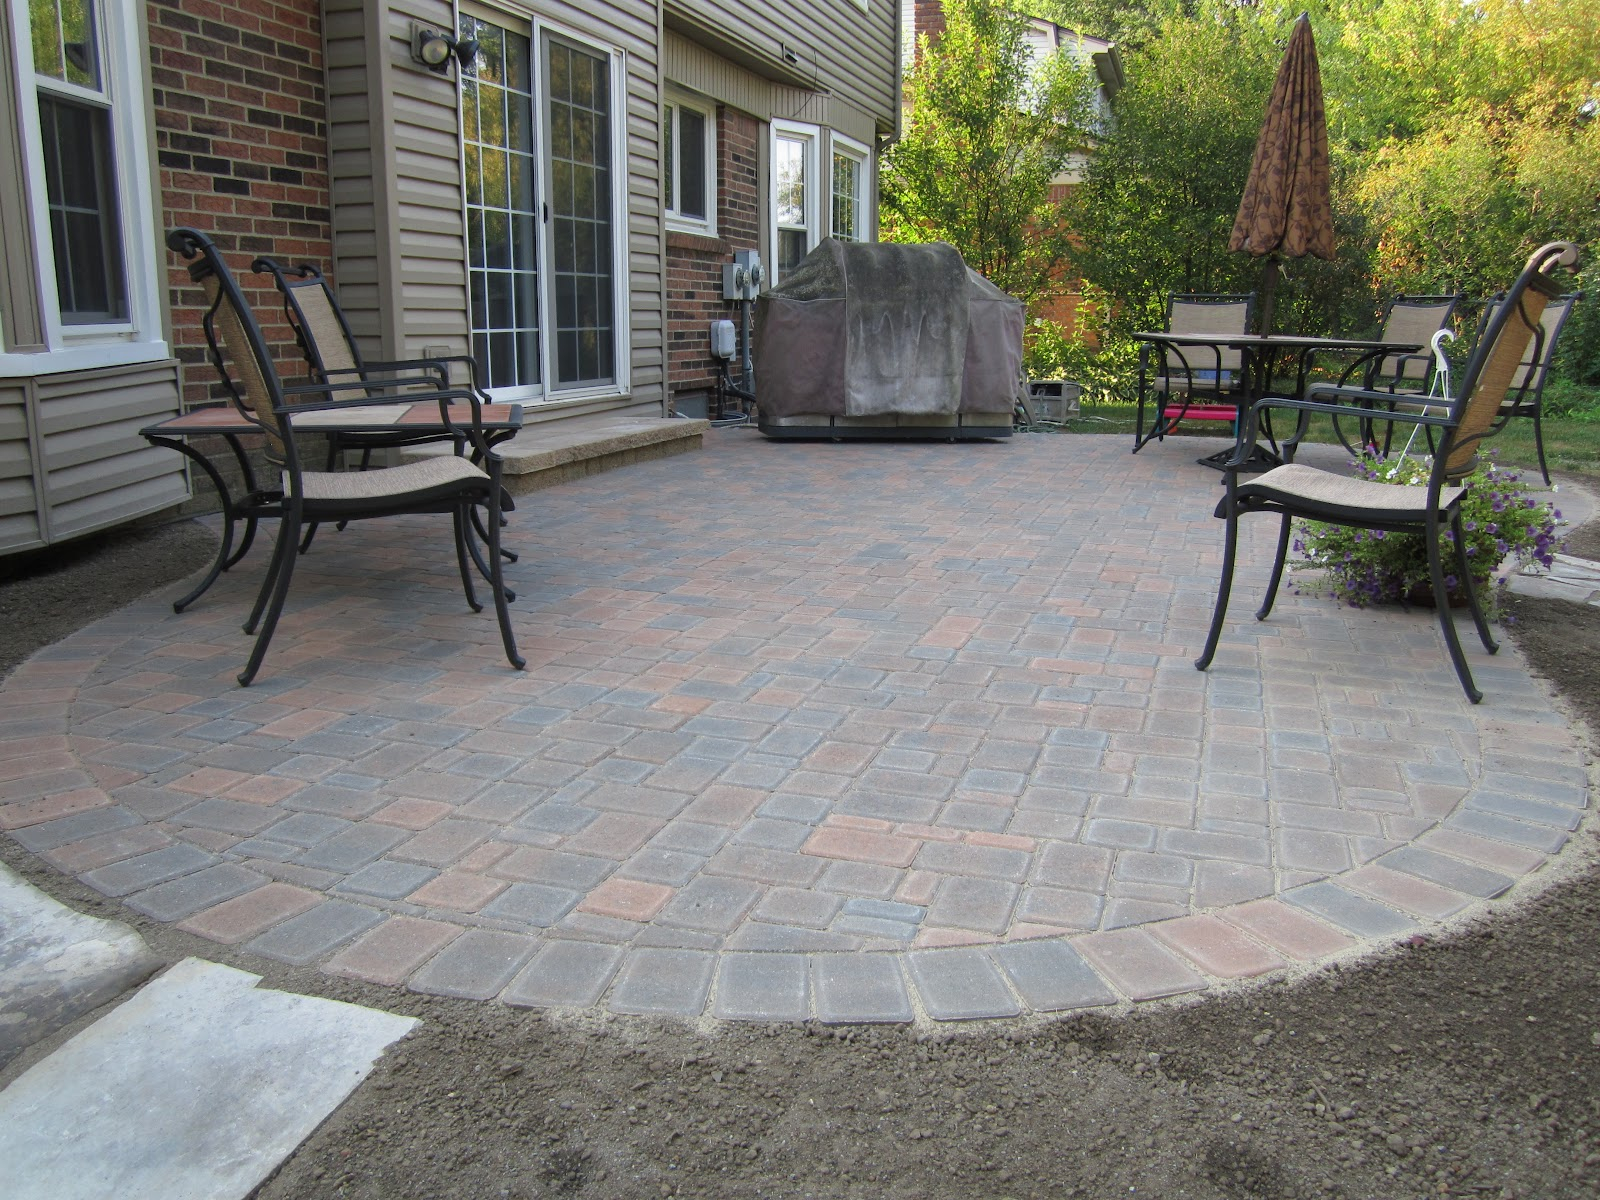 Block Patio Awesome Patio Ideas Patio Block Ideas With Paving Brick Within  Size 1600 X 1200